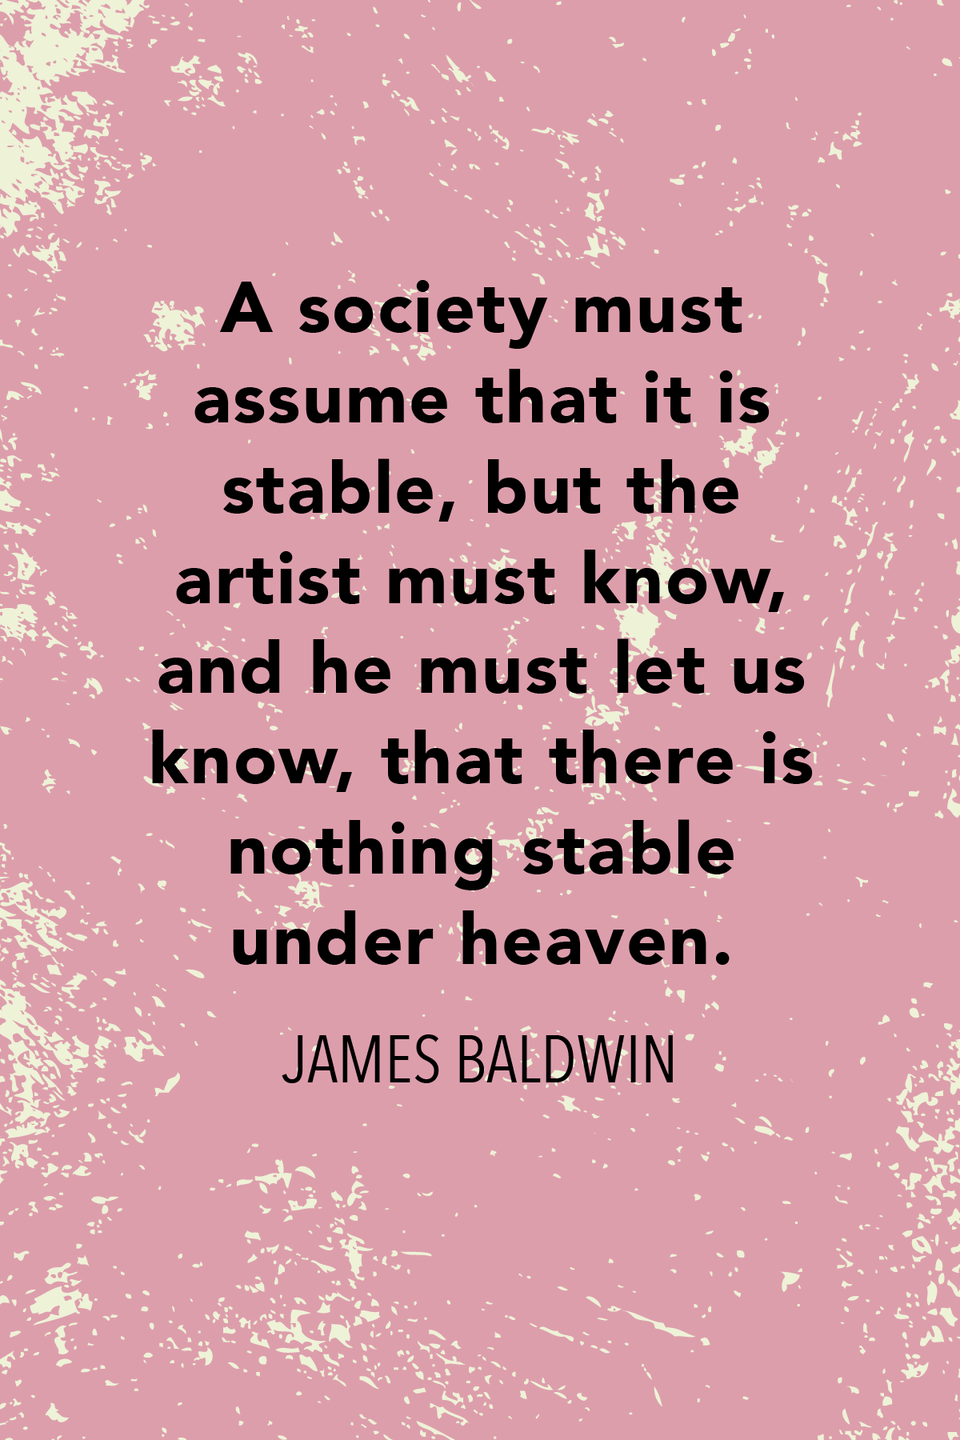 """<p>""""A society must assume that it is stable, but the artist must know, and he must let us know, that there is nothing stable under heaven,"""" Baldwin wrote in his 1962 essay <em>The Creative Process.</em></p>"""